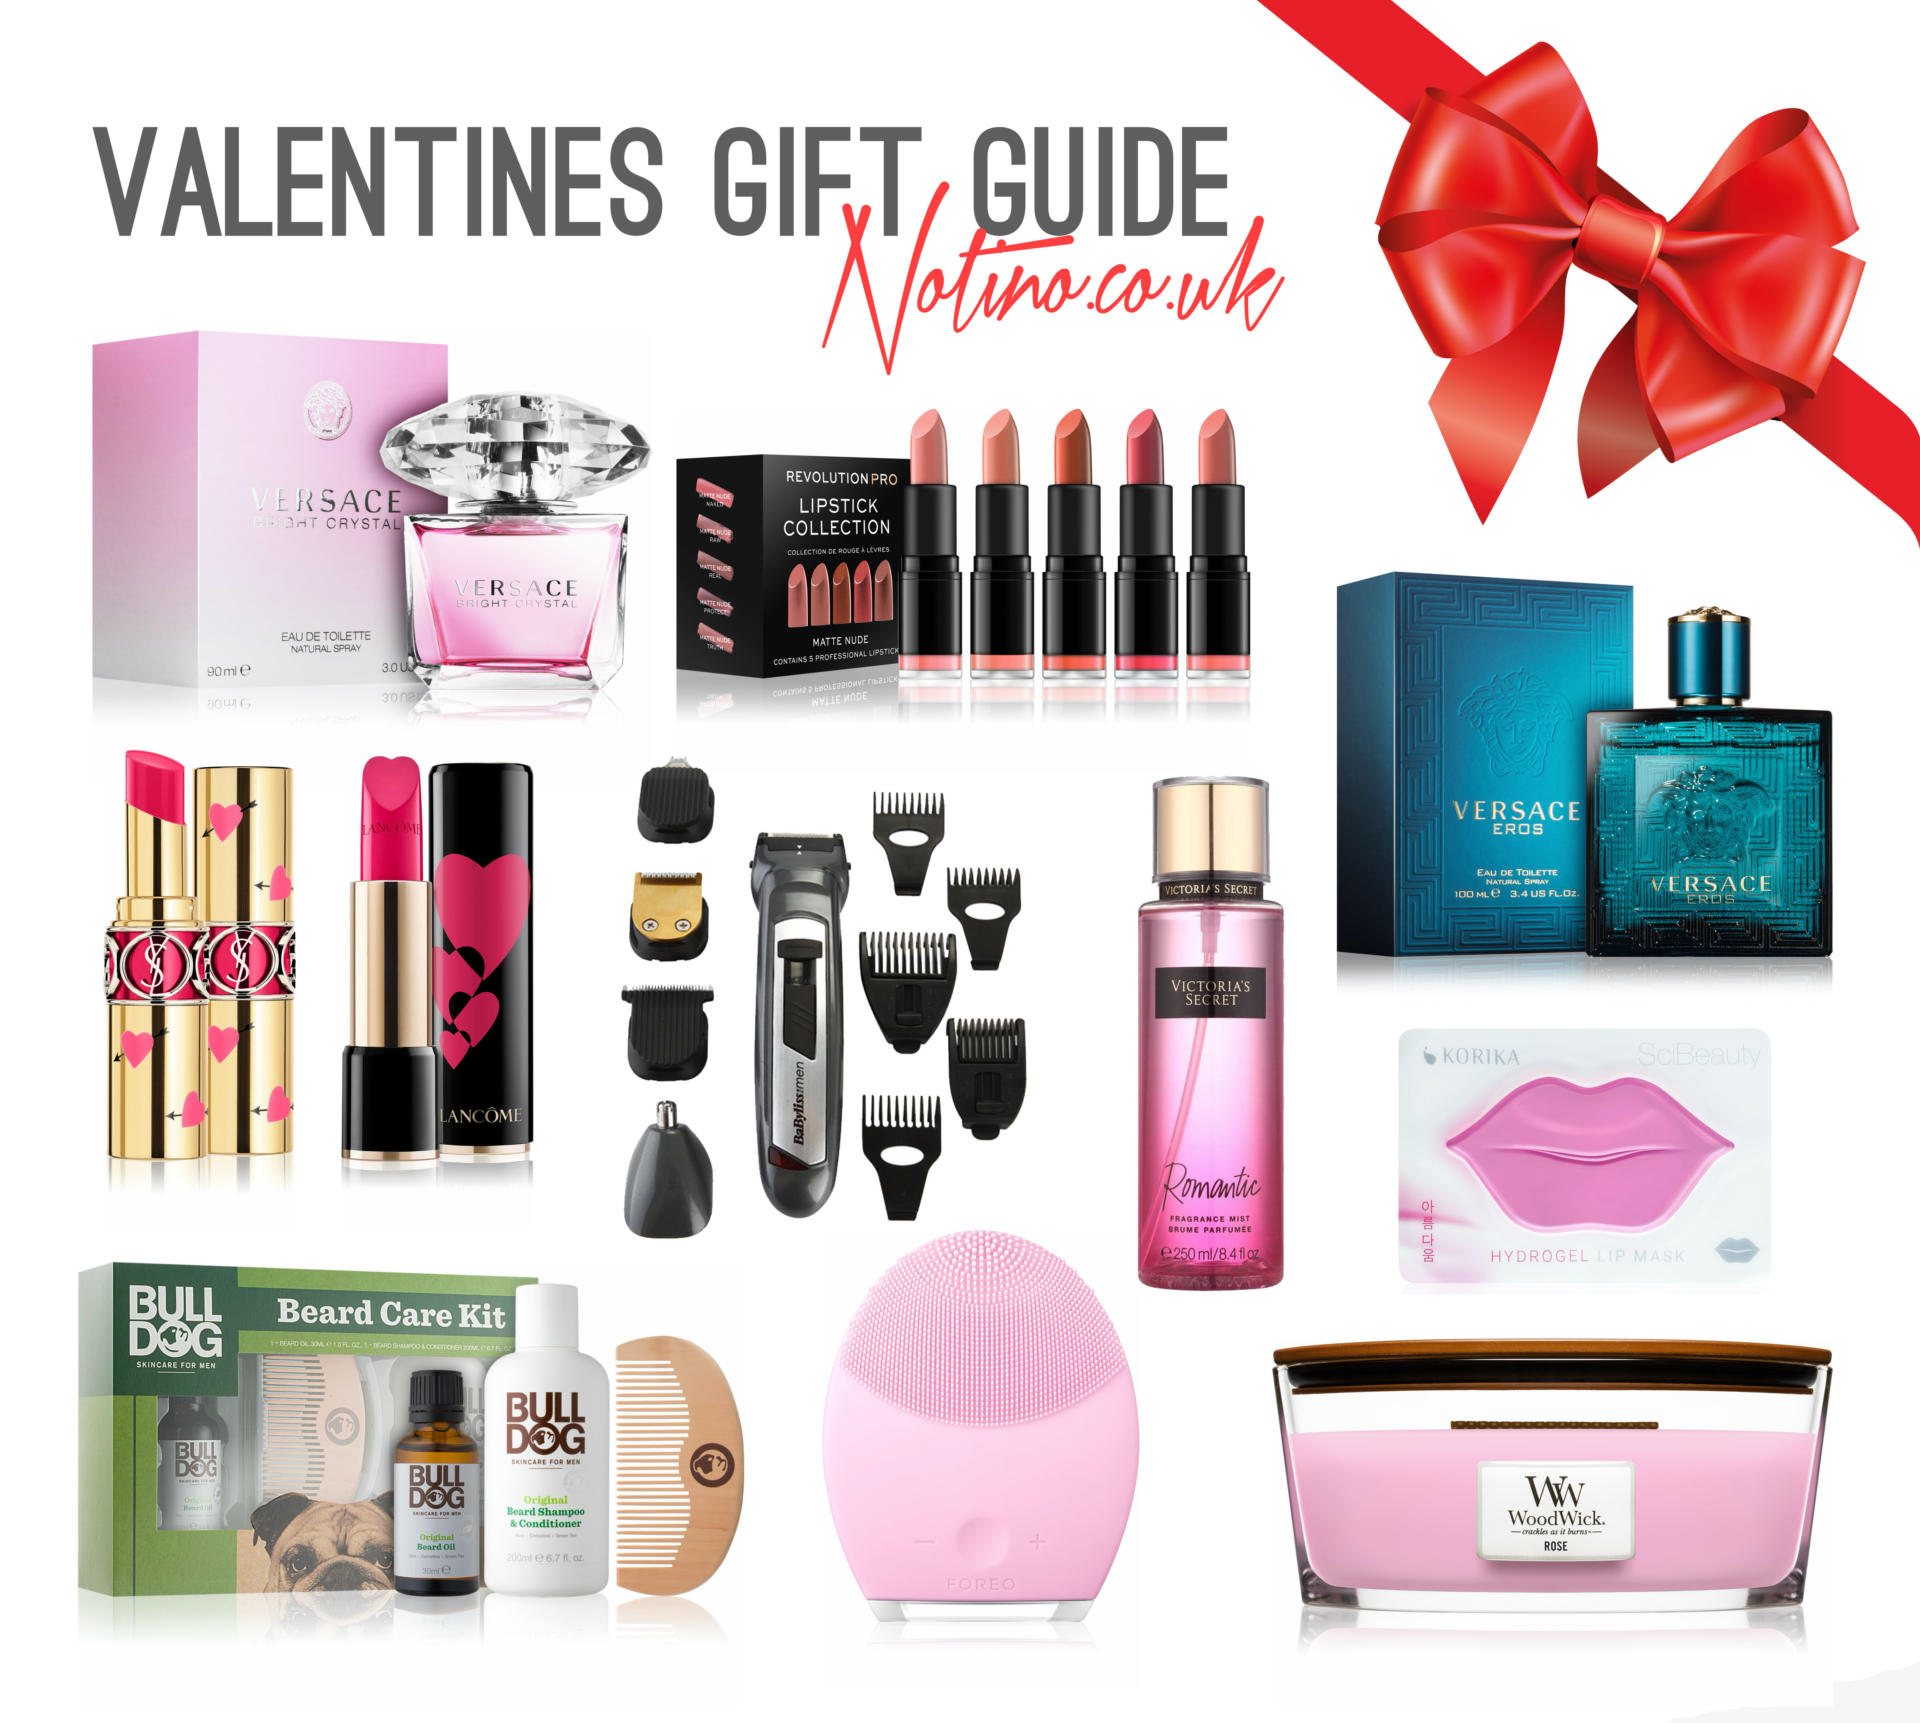 Valentine's Day Gift Guide with Notino.co.uk - Rachel Nicole UK Blogger